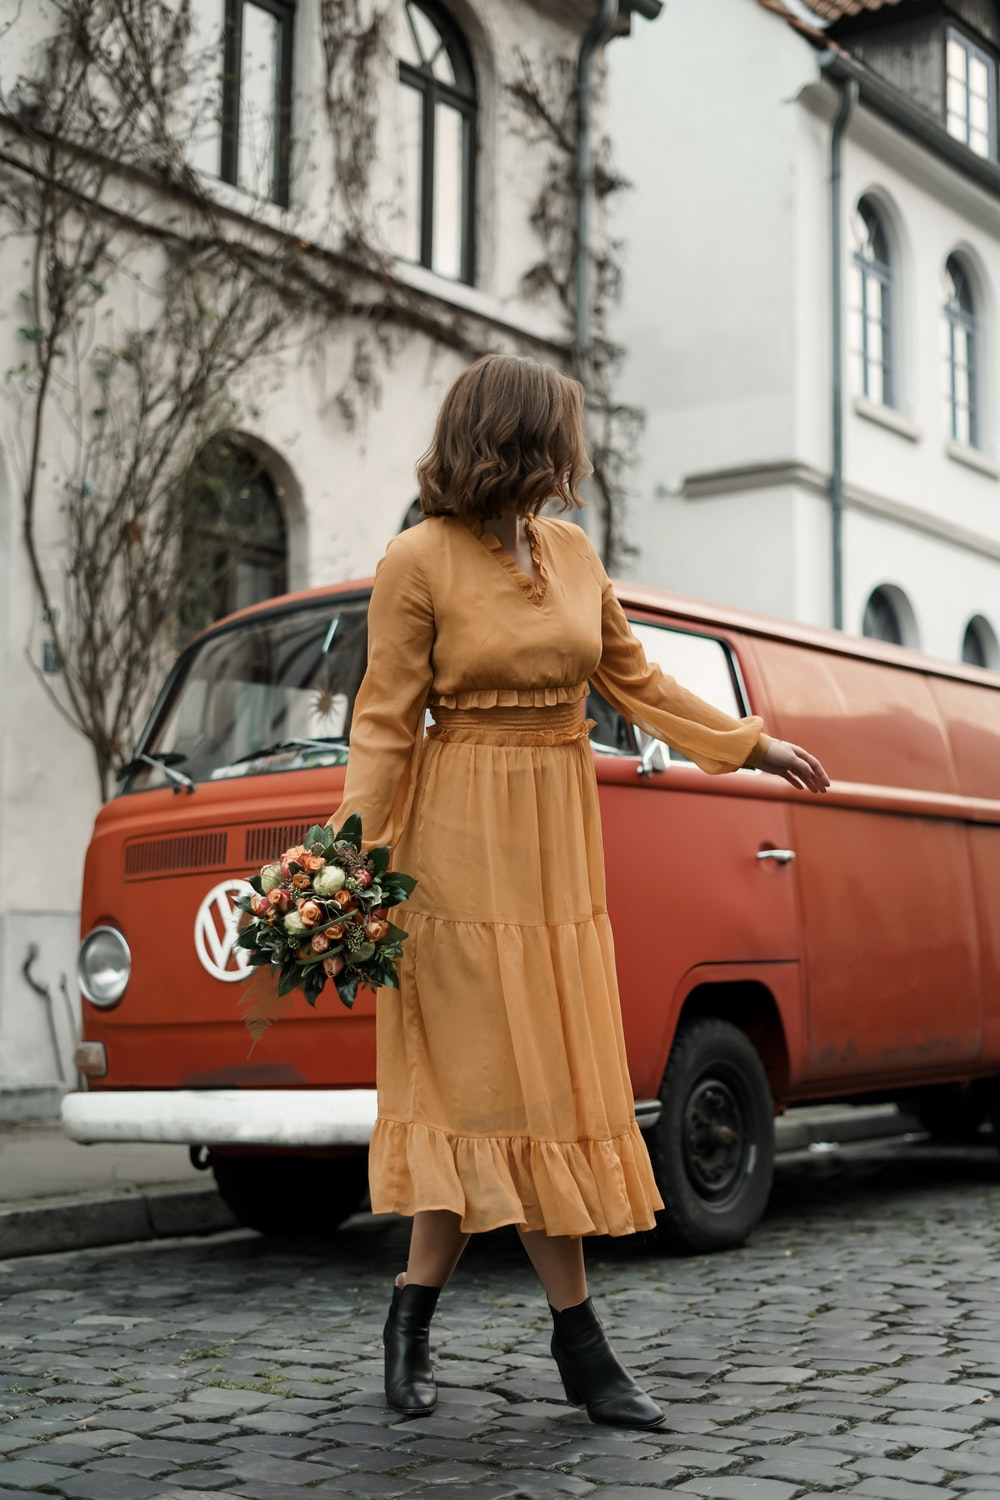 woman in yellow long sleeve dress leaning on red car during daytime